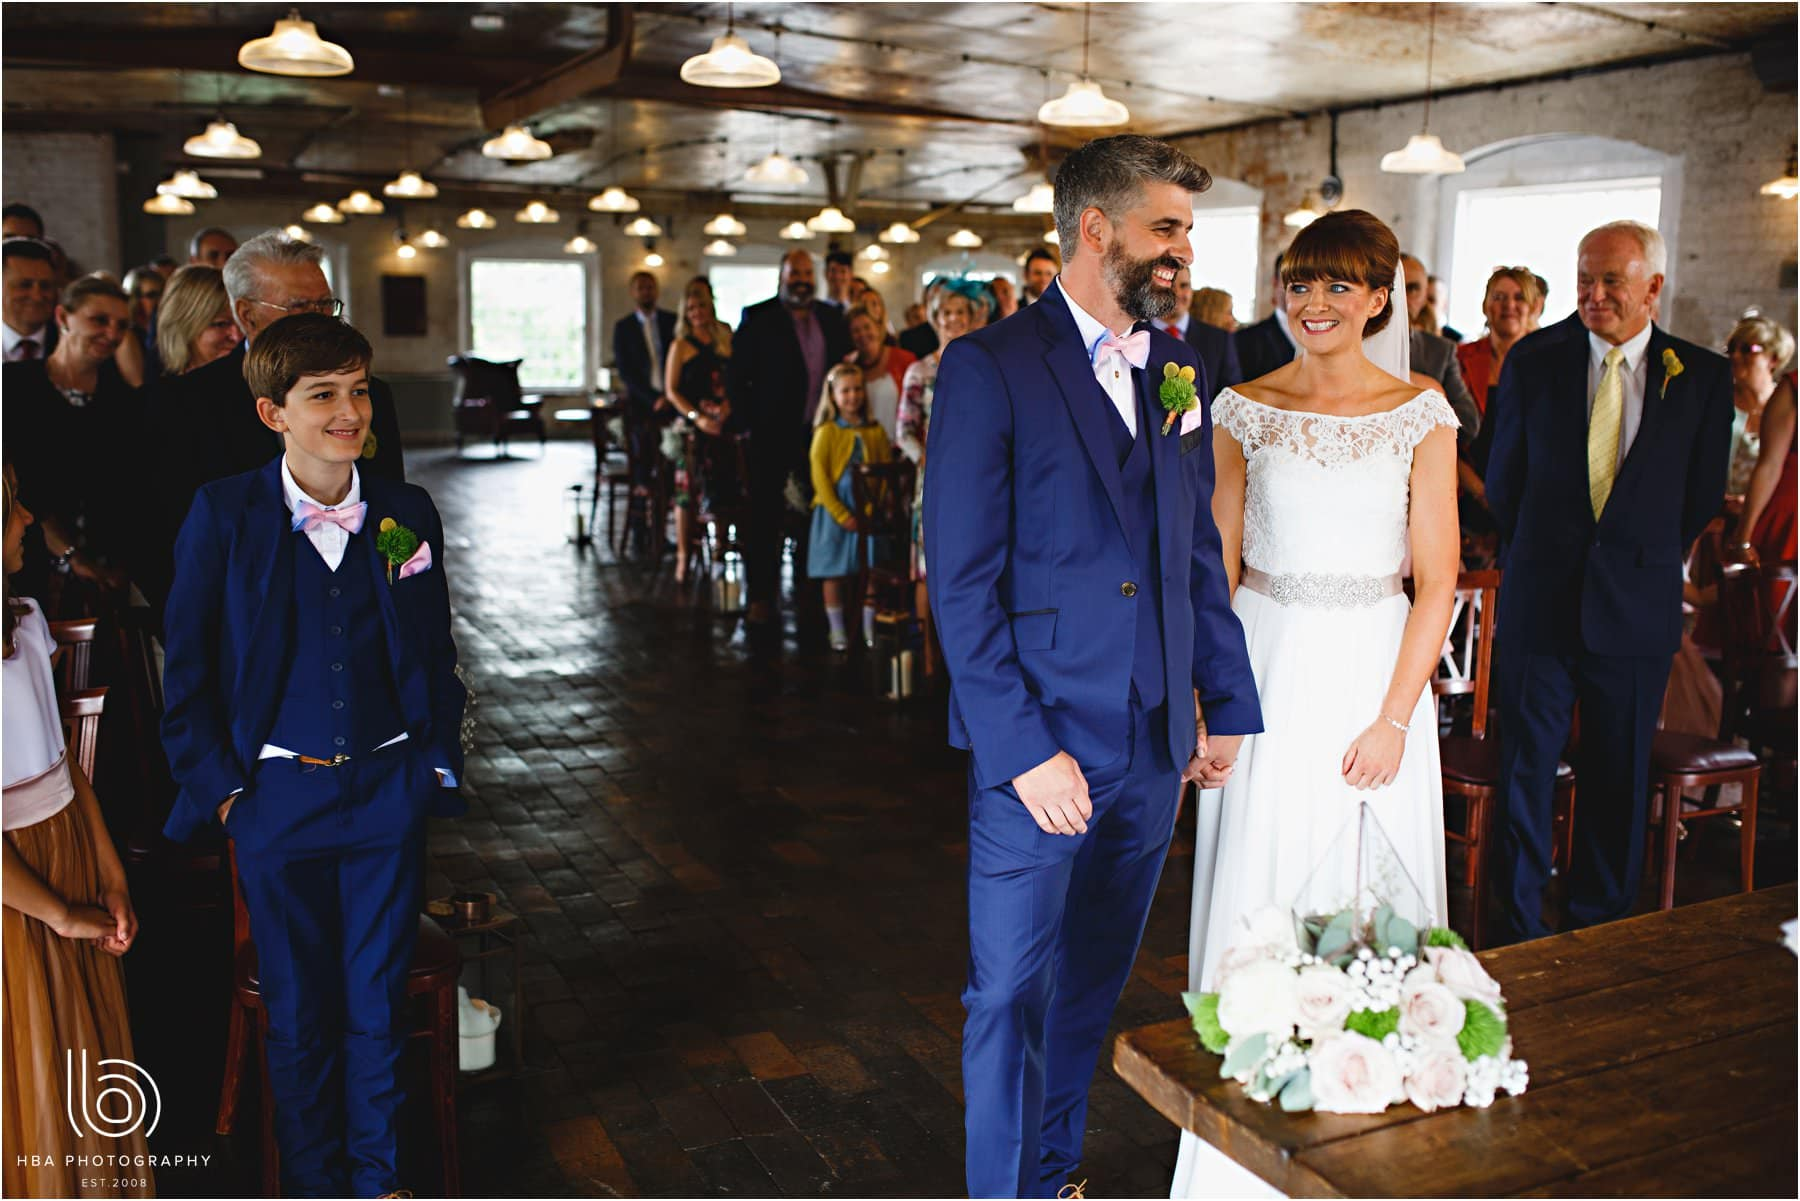 the wedding ceremony at The West Mill